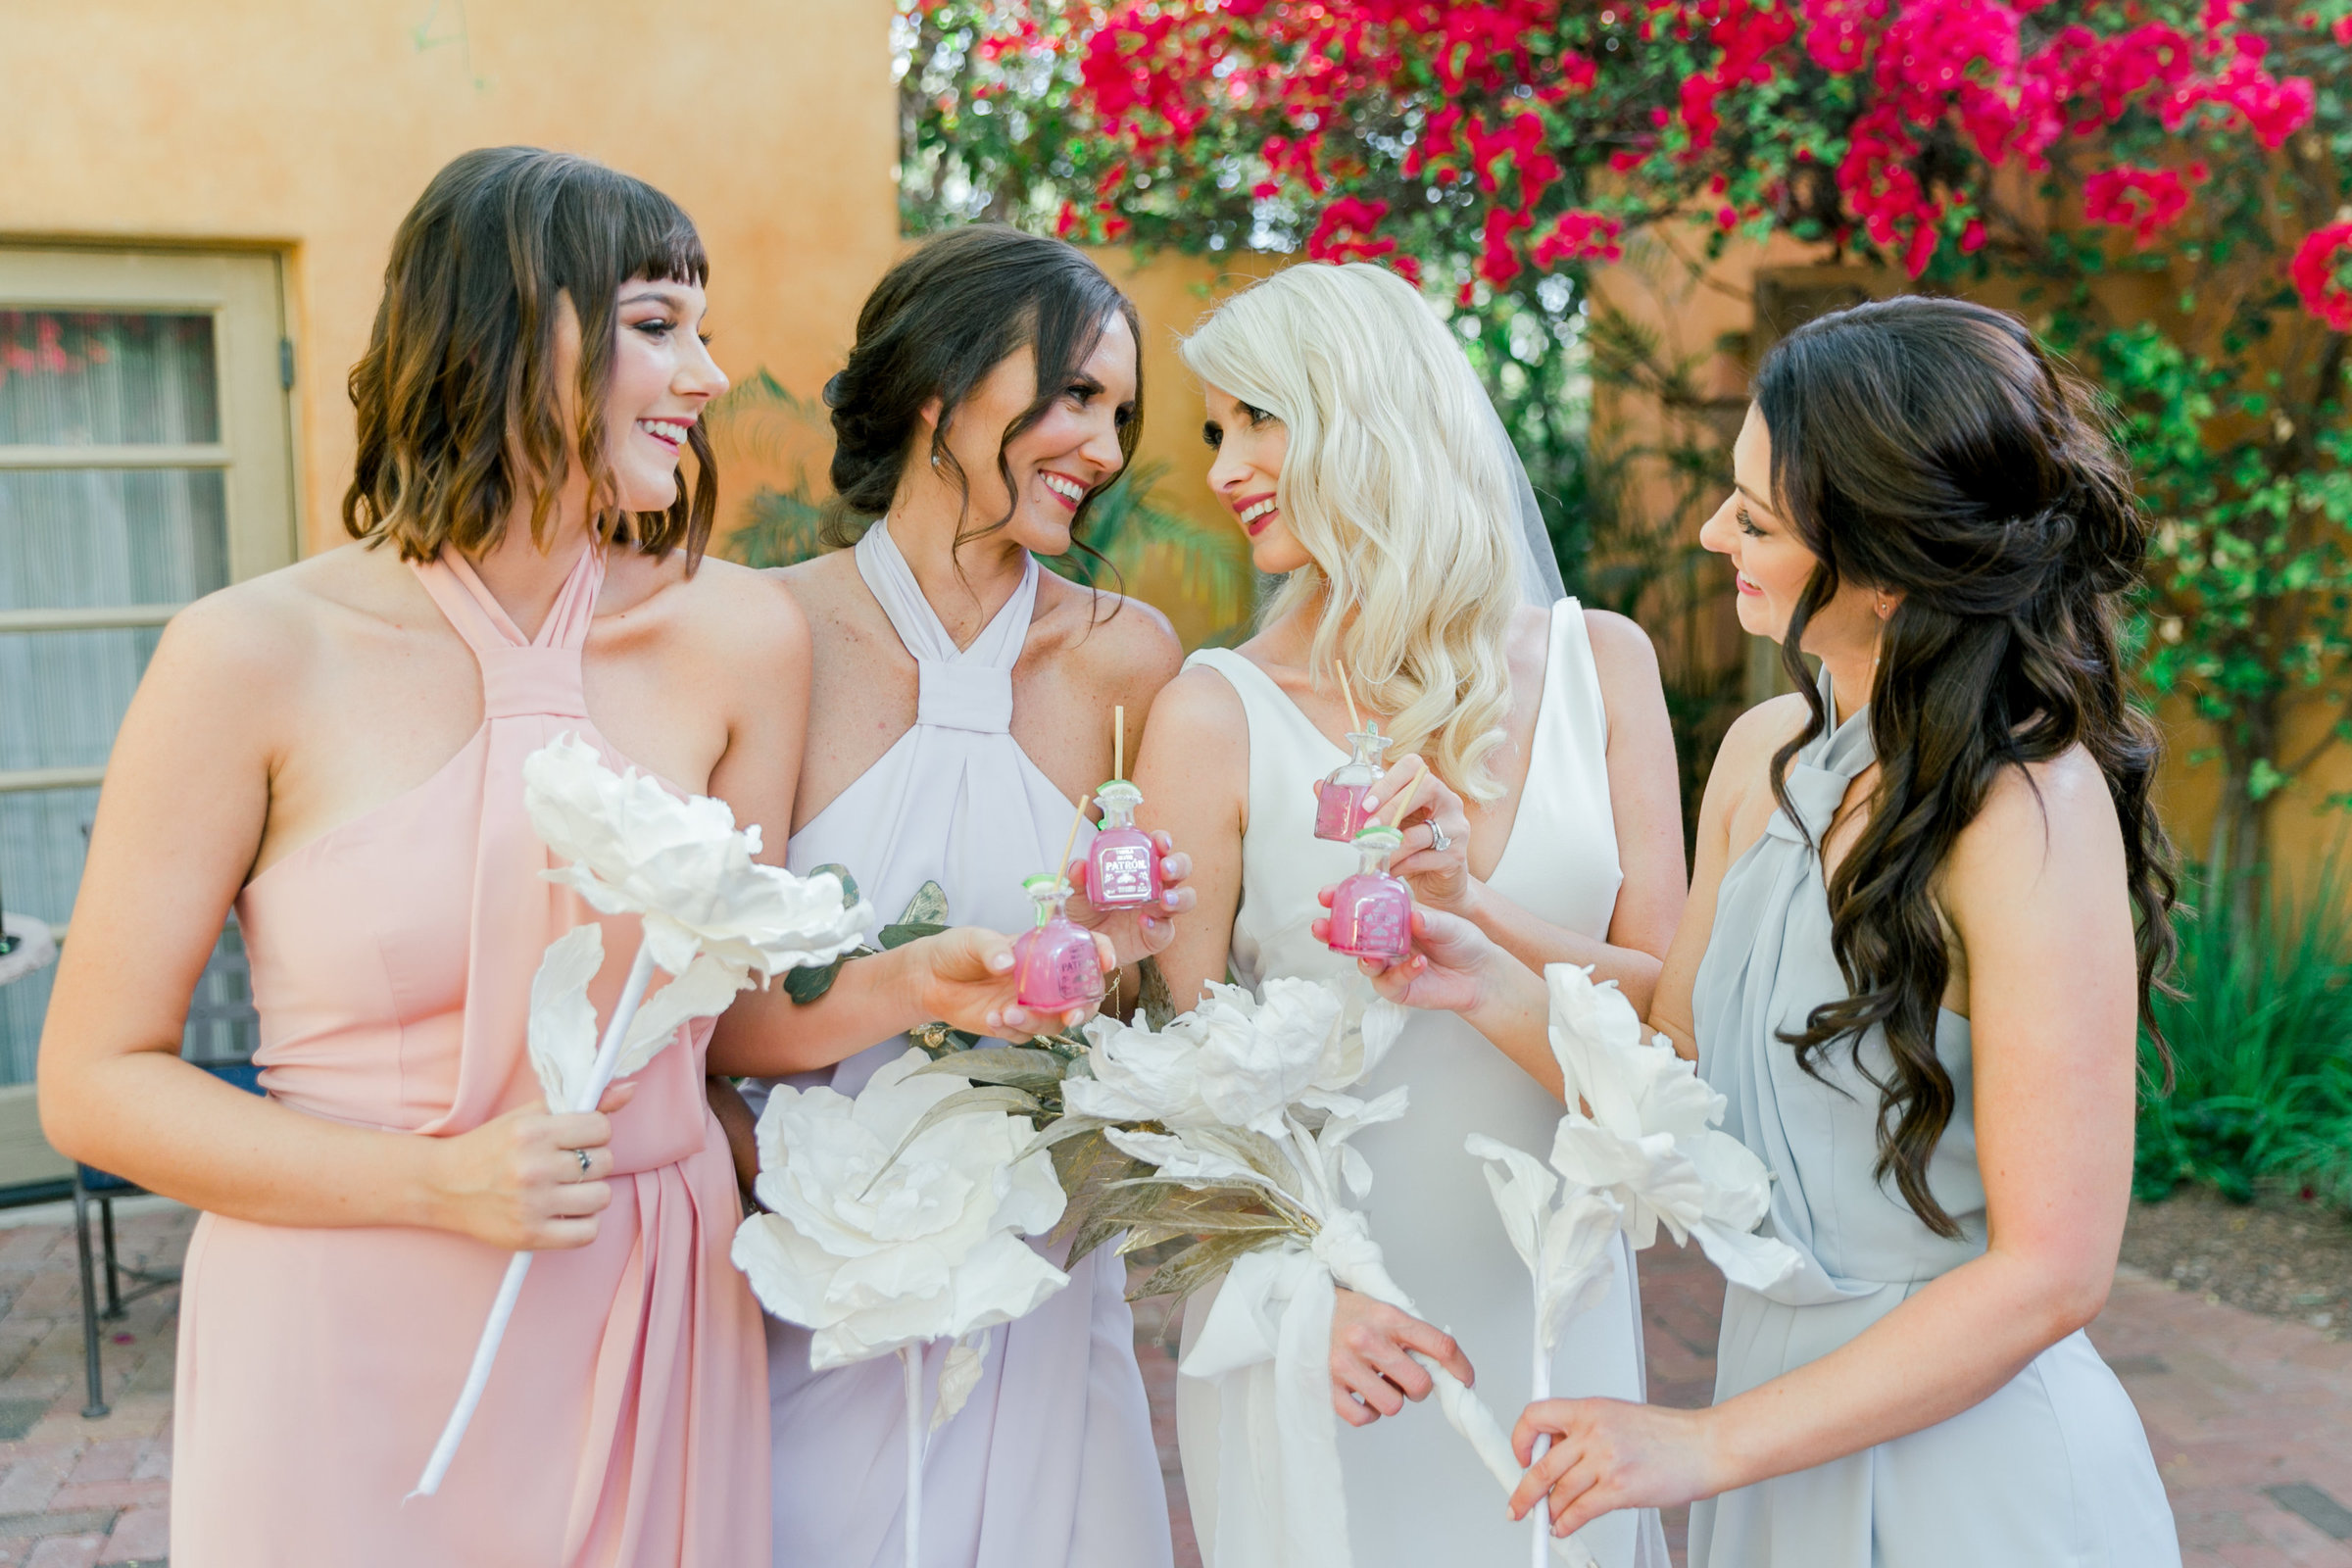 Karlie Colleen Photography - Arizona Wedding - Royal Palms Resort- Alex & Alex-105